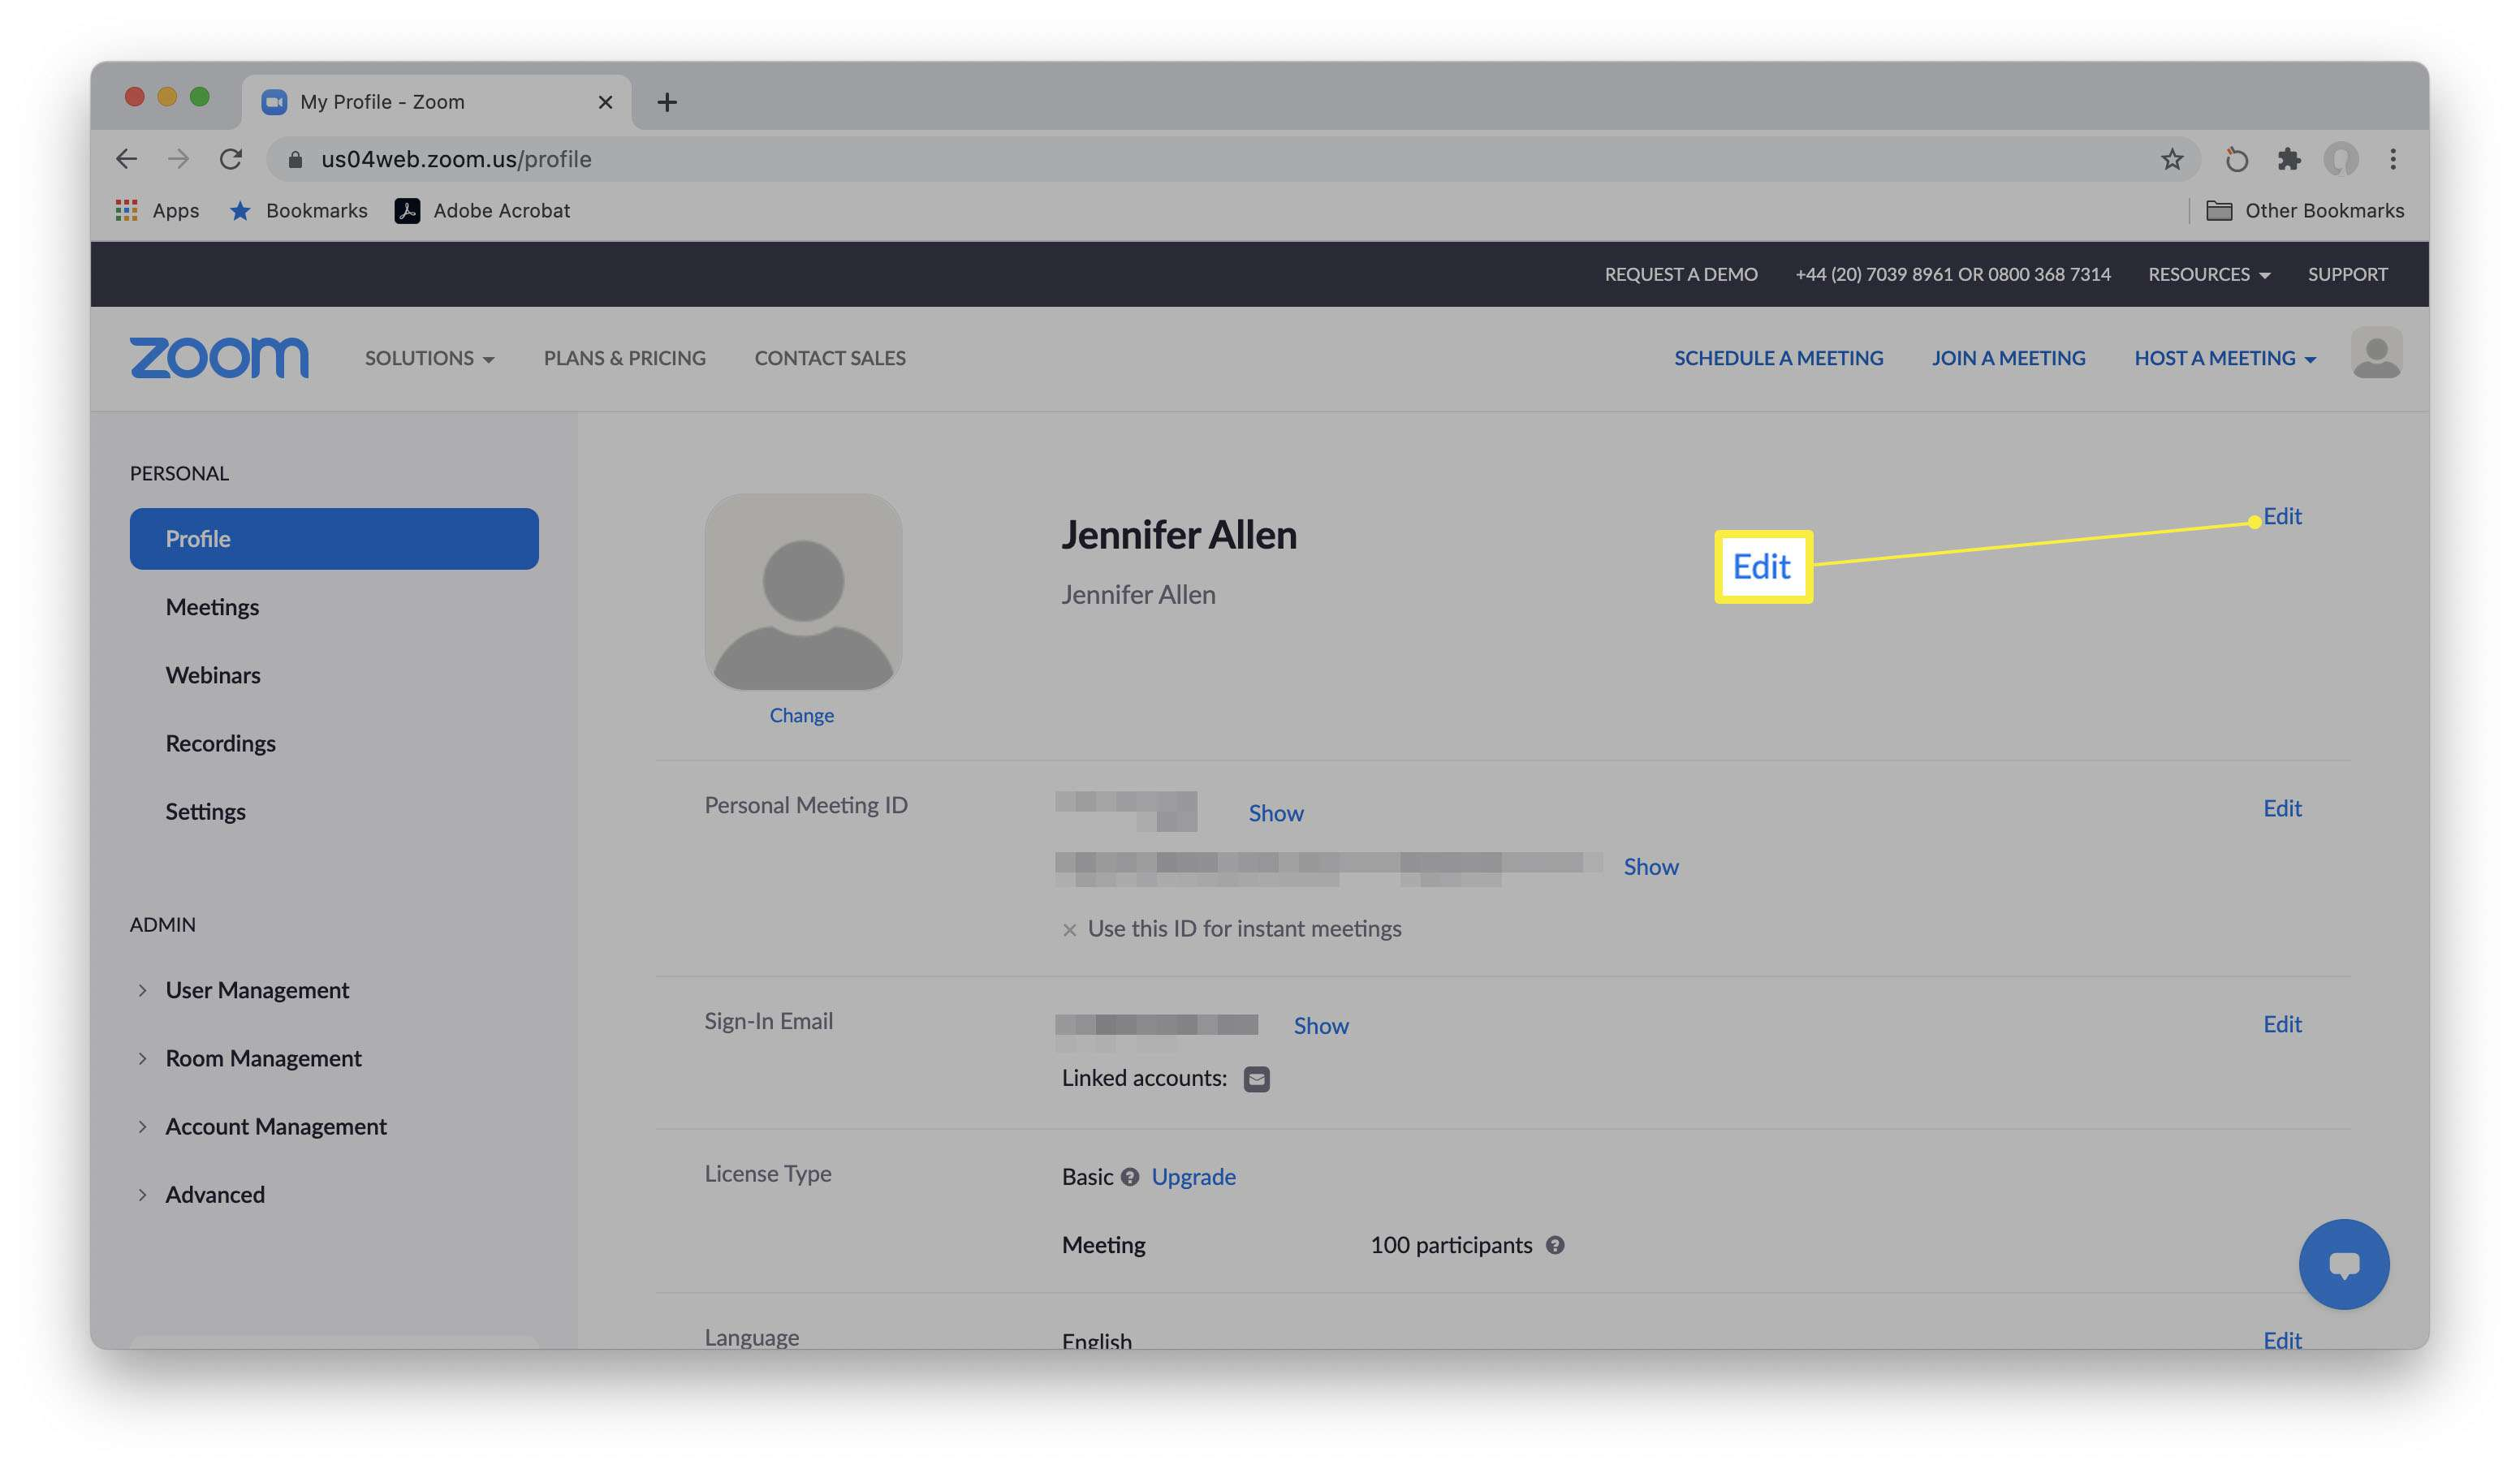 Zoom website with edit display name highlighted within profile